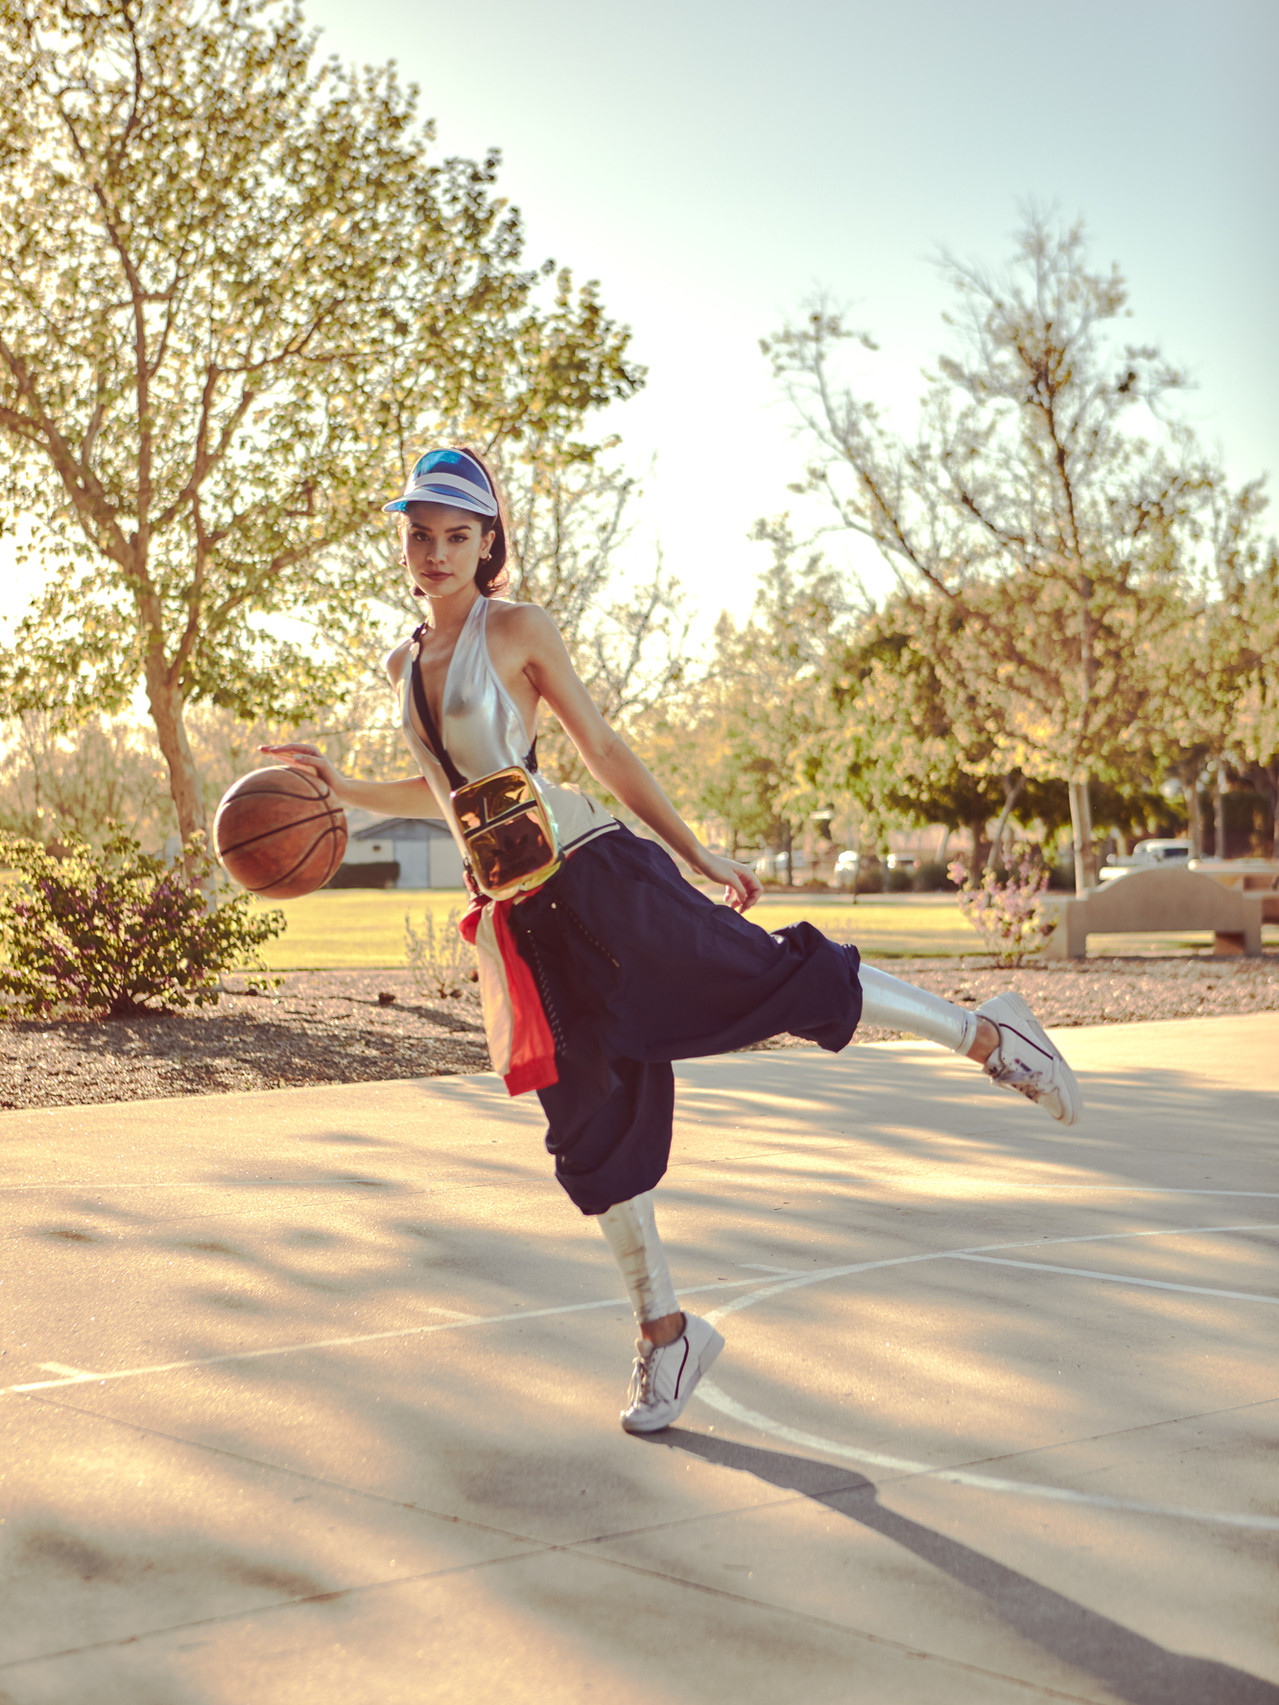 Model Gracie Phillips plays basketball and models a silver bodysuit and a retro red, white, and blue athletic jumpsuit from Urban Outfitters along with a metallic backpack and shoes by Adidas for a sporty summer fashion editorial by Patrick Patton Photography.